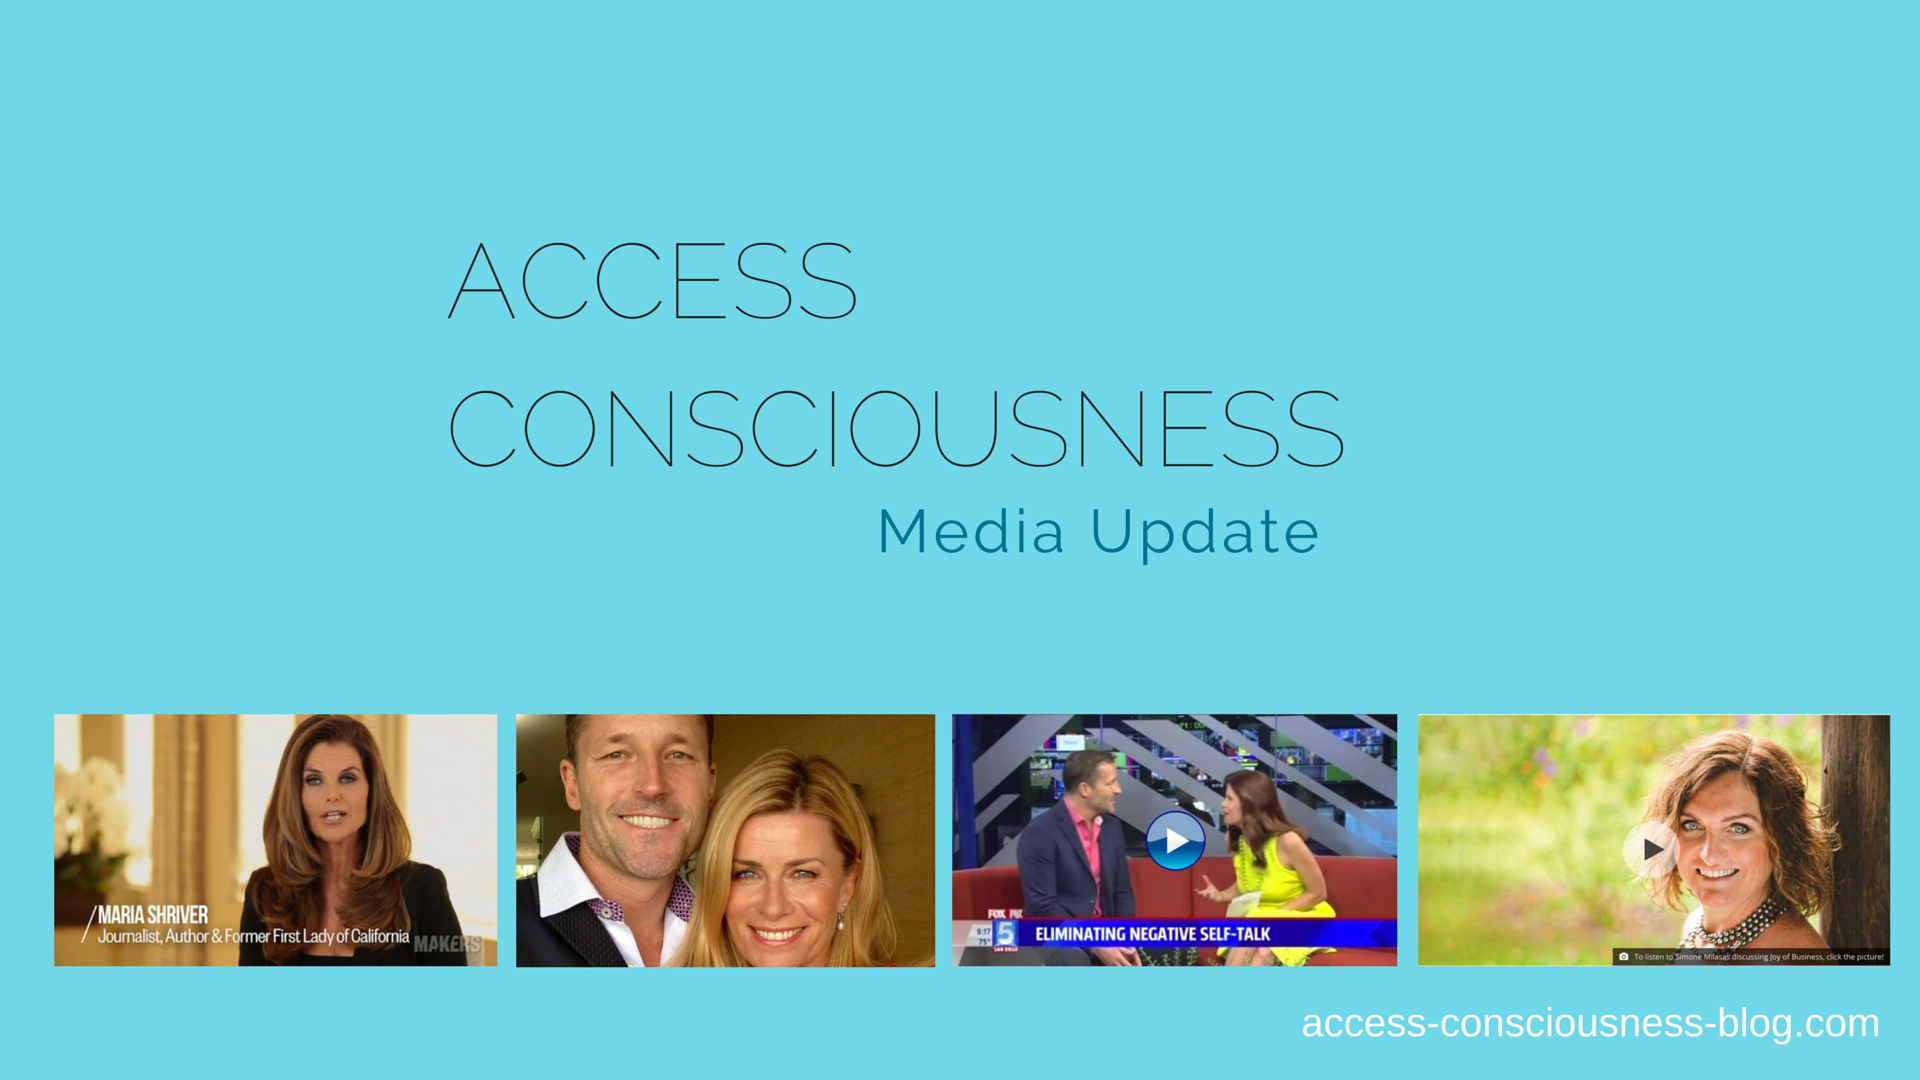 Access Consciousness in The Headlines!